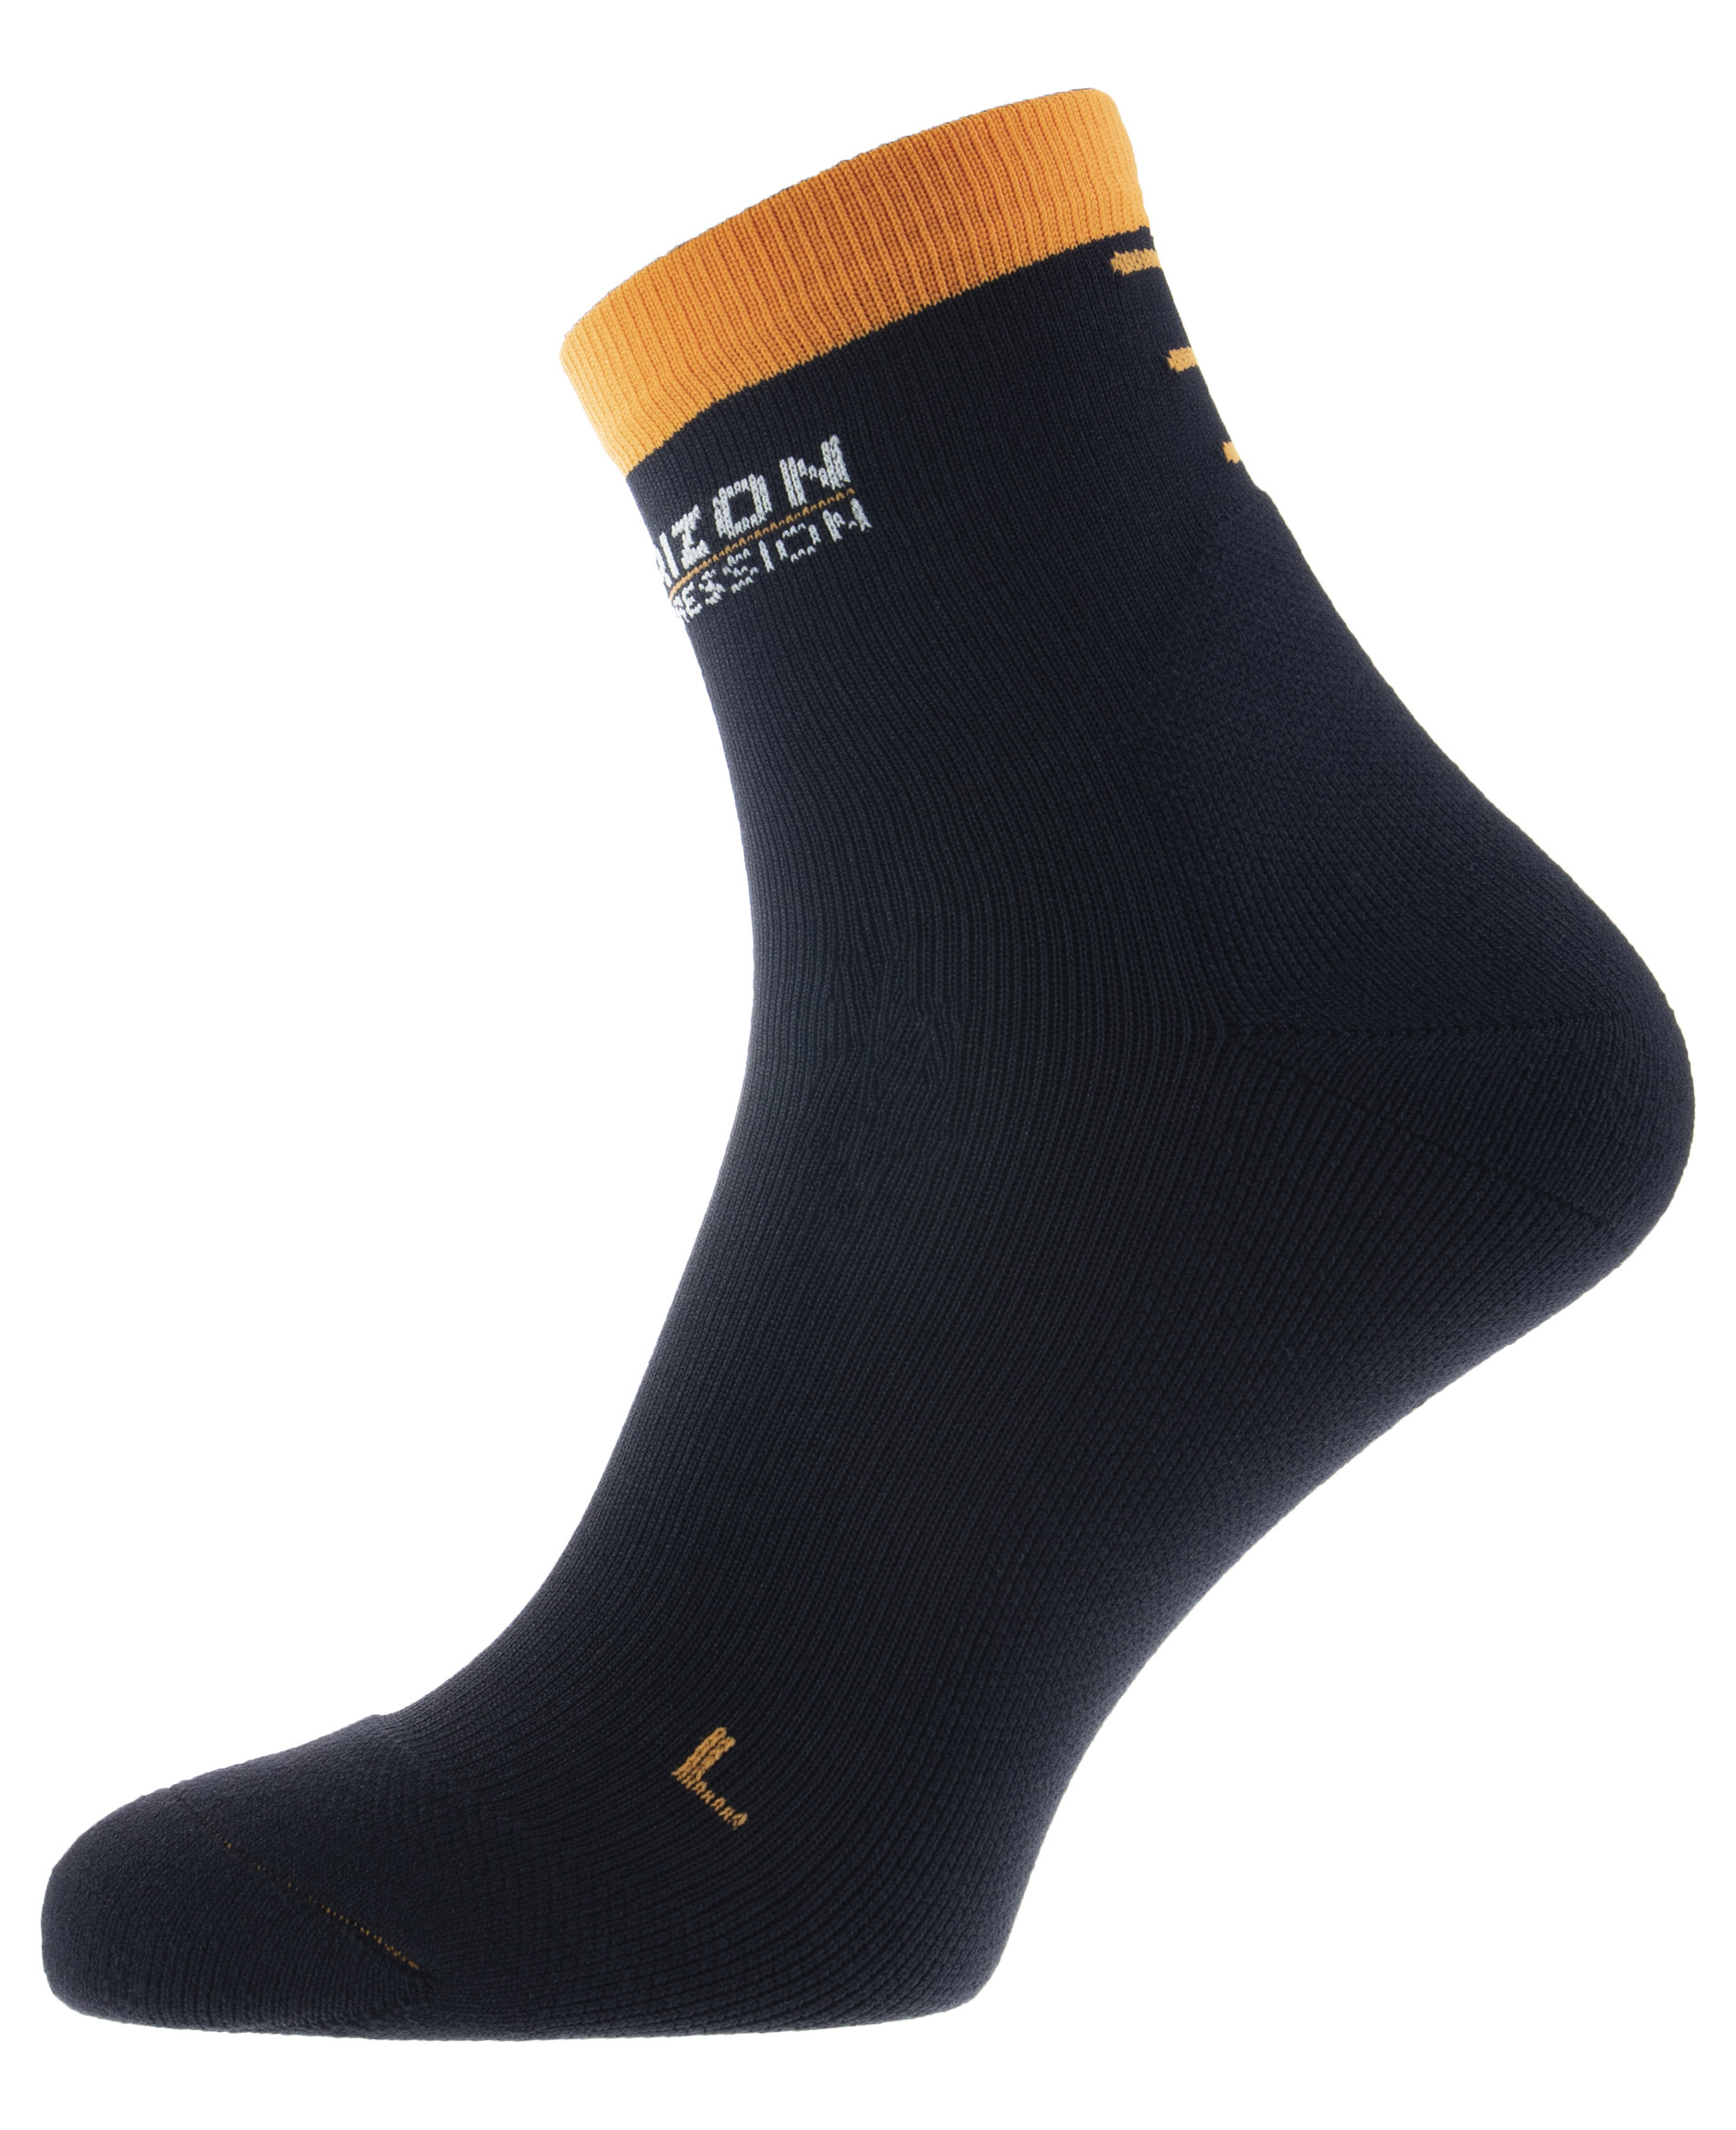 Compression Quarter Black/Orange